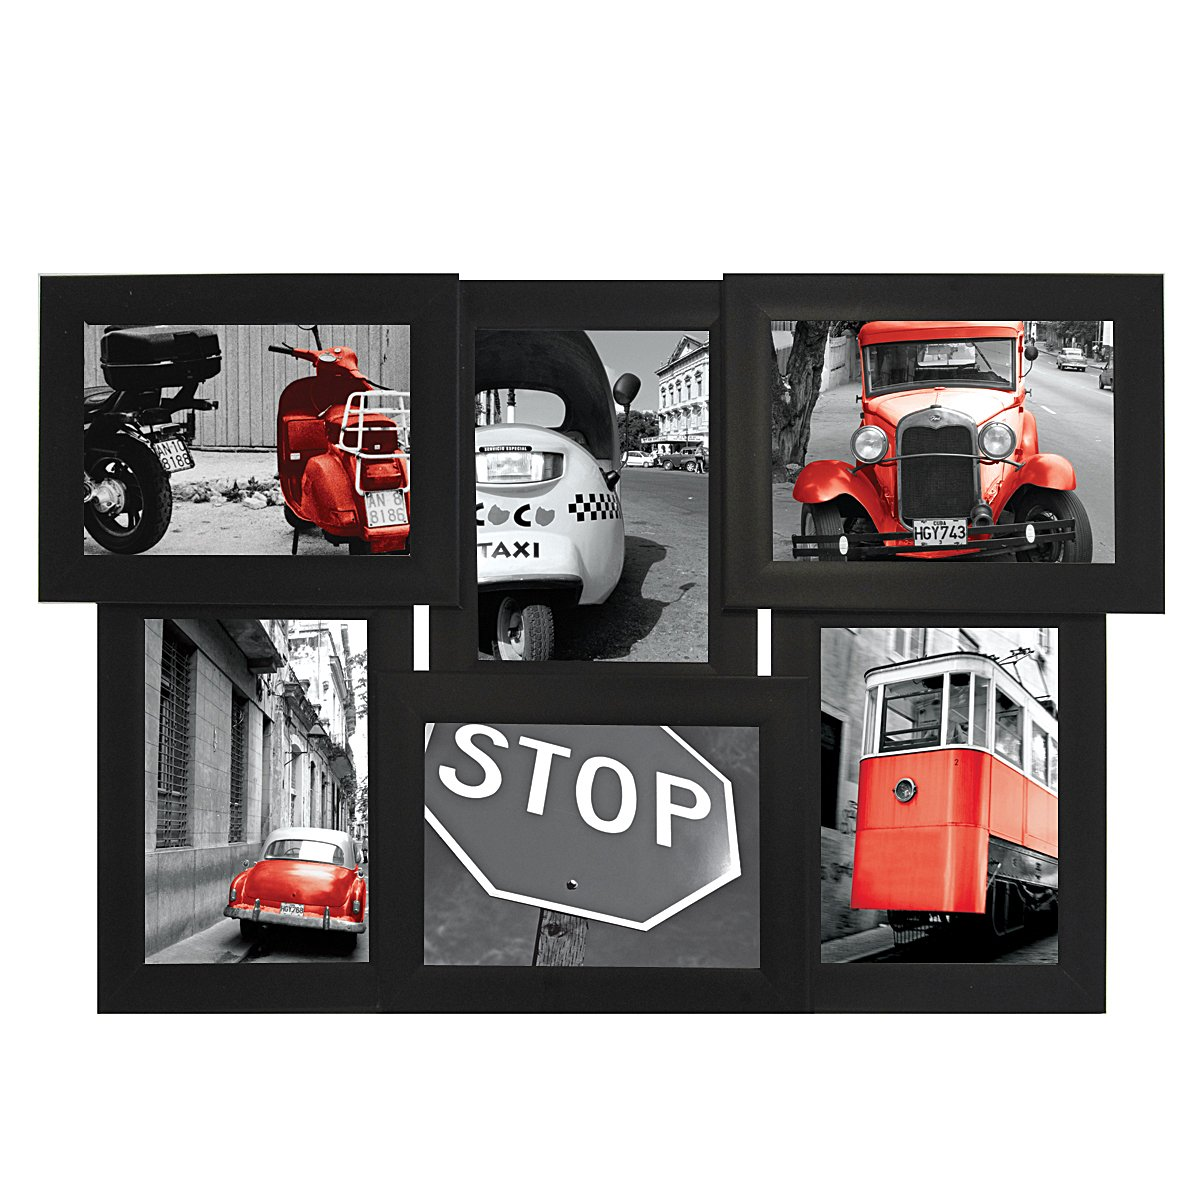 Cheap 5 x 7 collage find 5 x 7 collage deals on line at alibaba get quotations nexxt mecca oversized collage picture frame 2250 by 1475 inch holds 6 jeuxipadfo Image collections